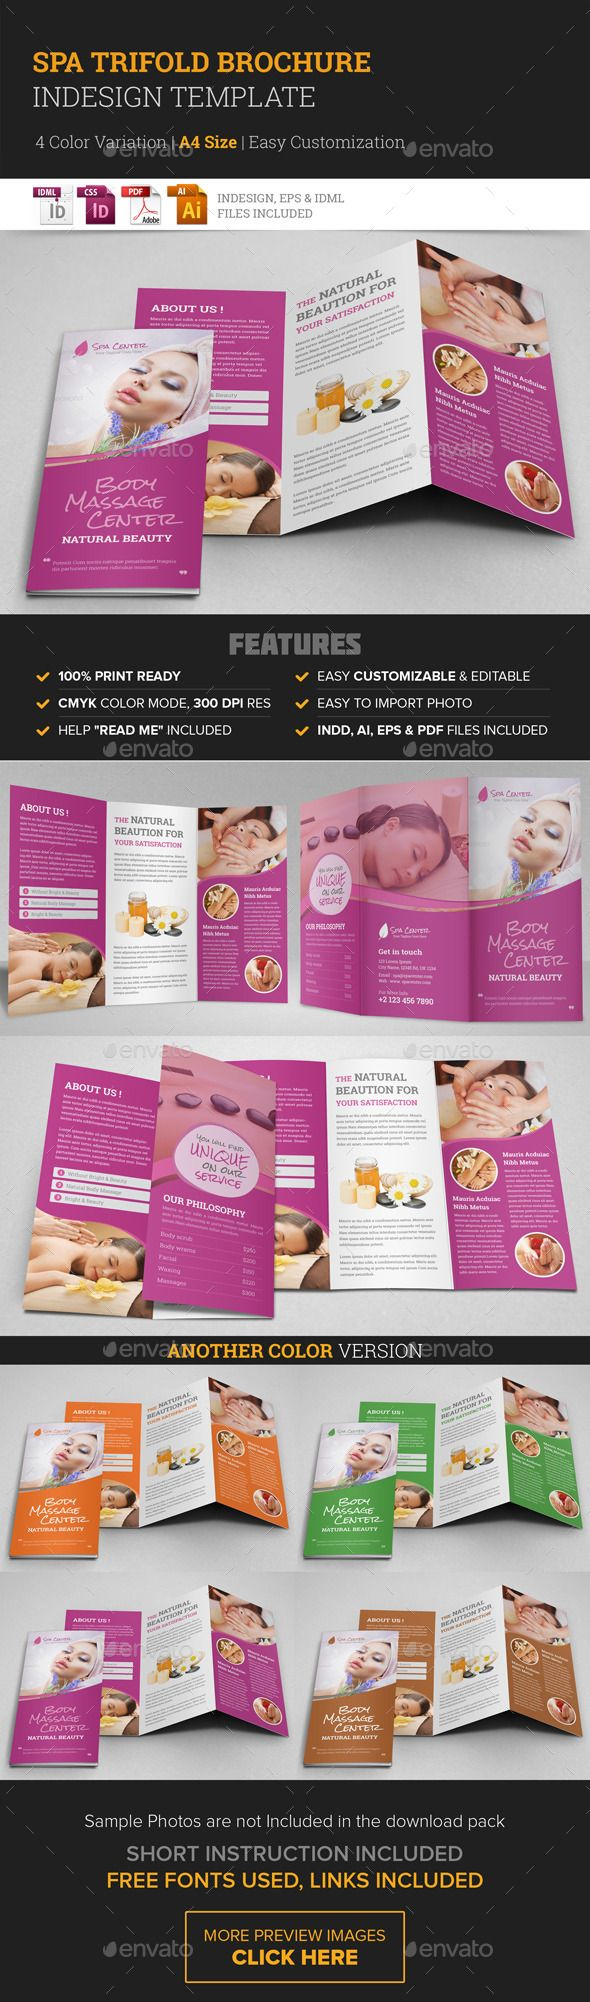 Spa & Beauty Salon Trifold Brochure Template #design Download: http://graphicriver.net/item/spa-beauty-salon-trifold-brochure-template/10395235?ref=ksioks